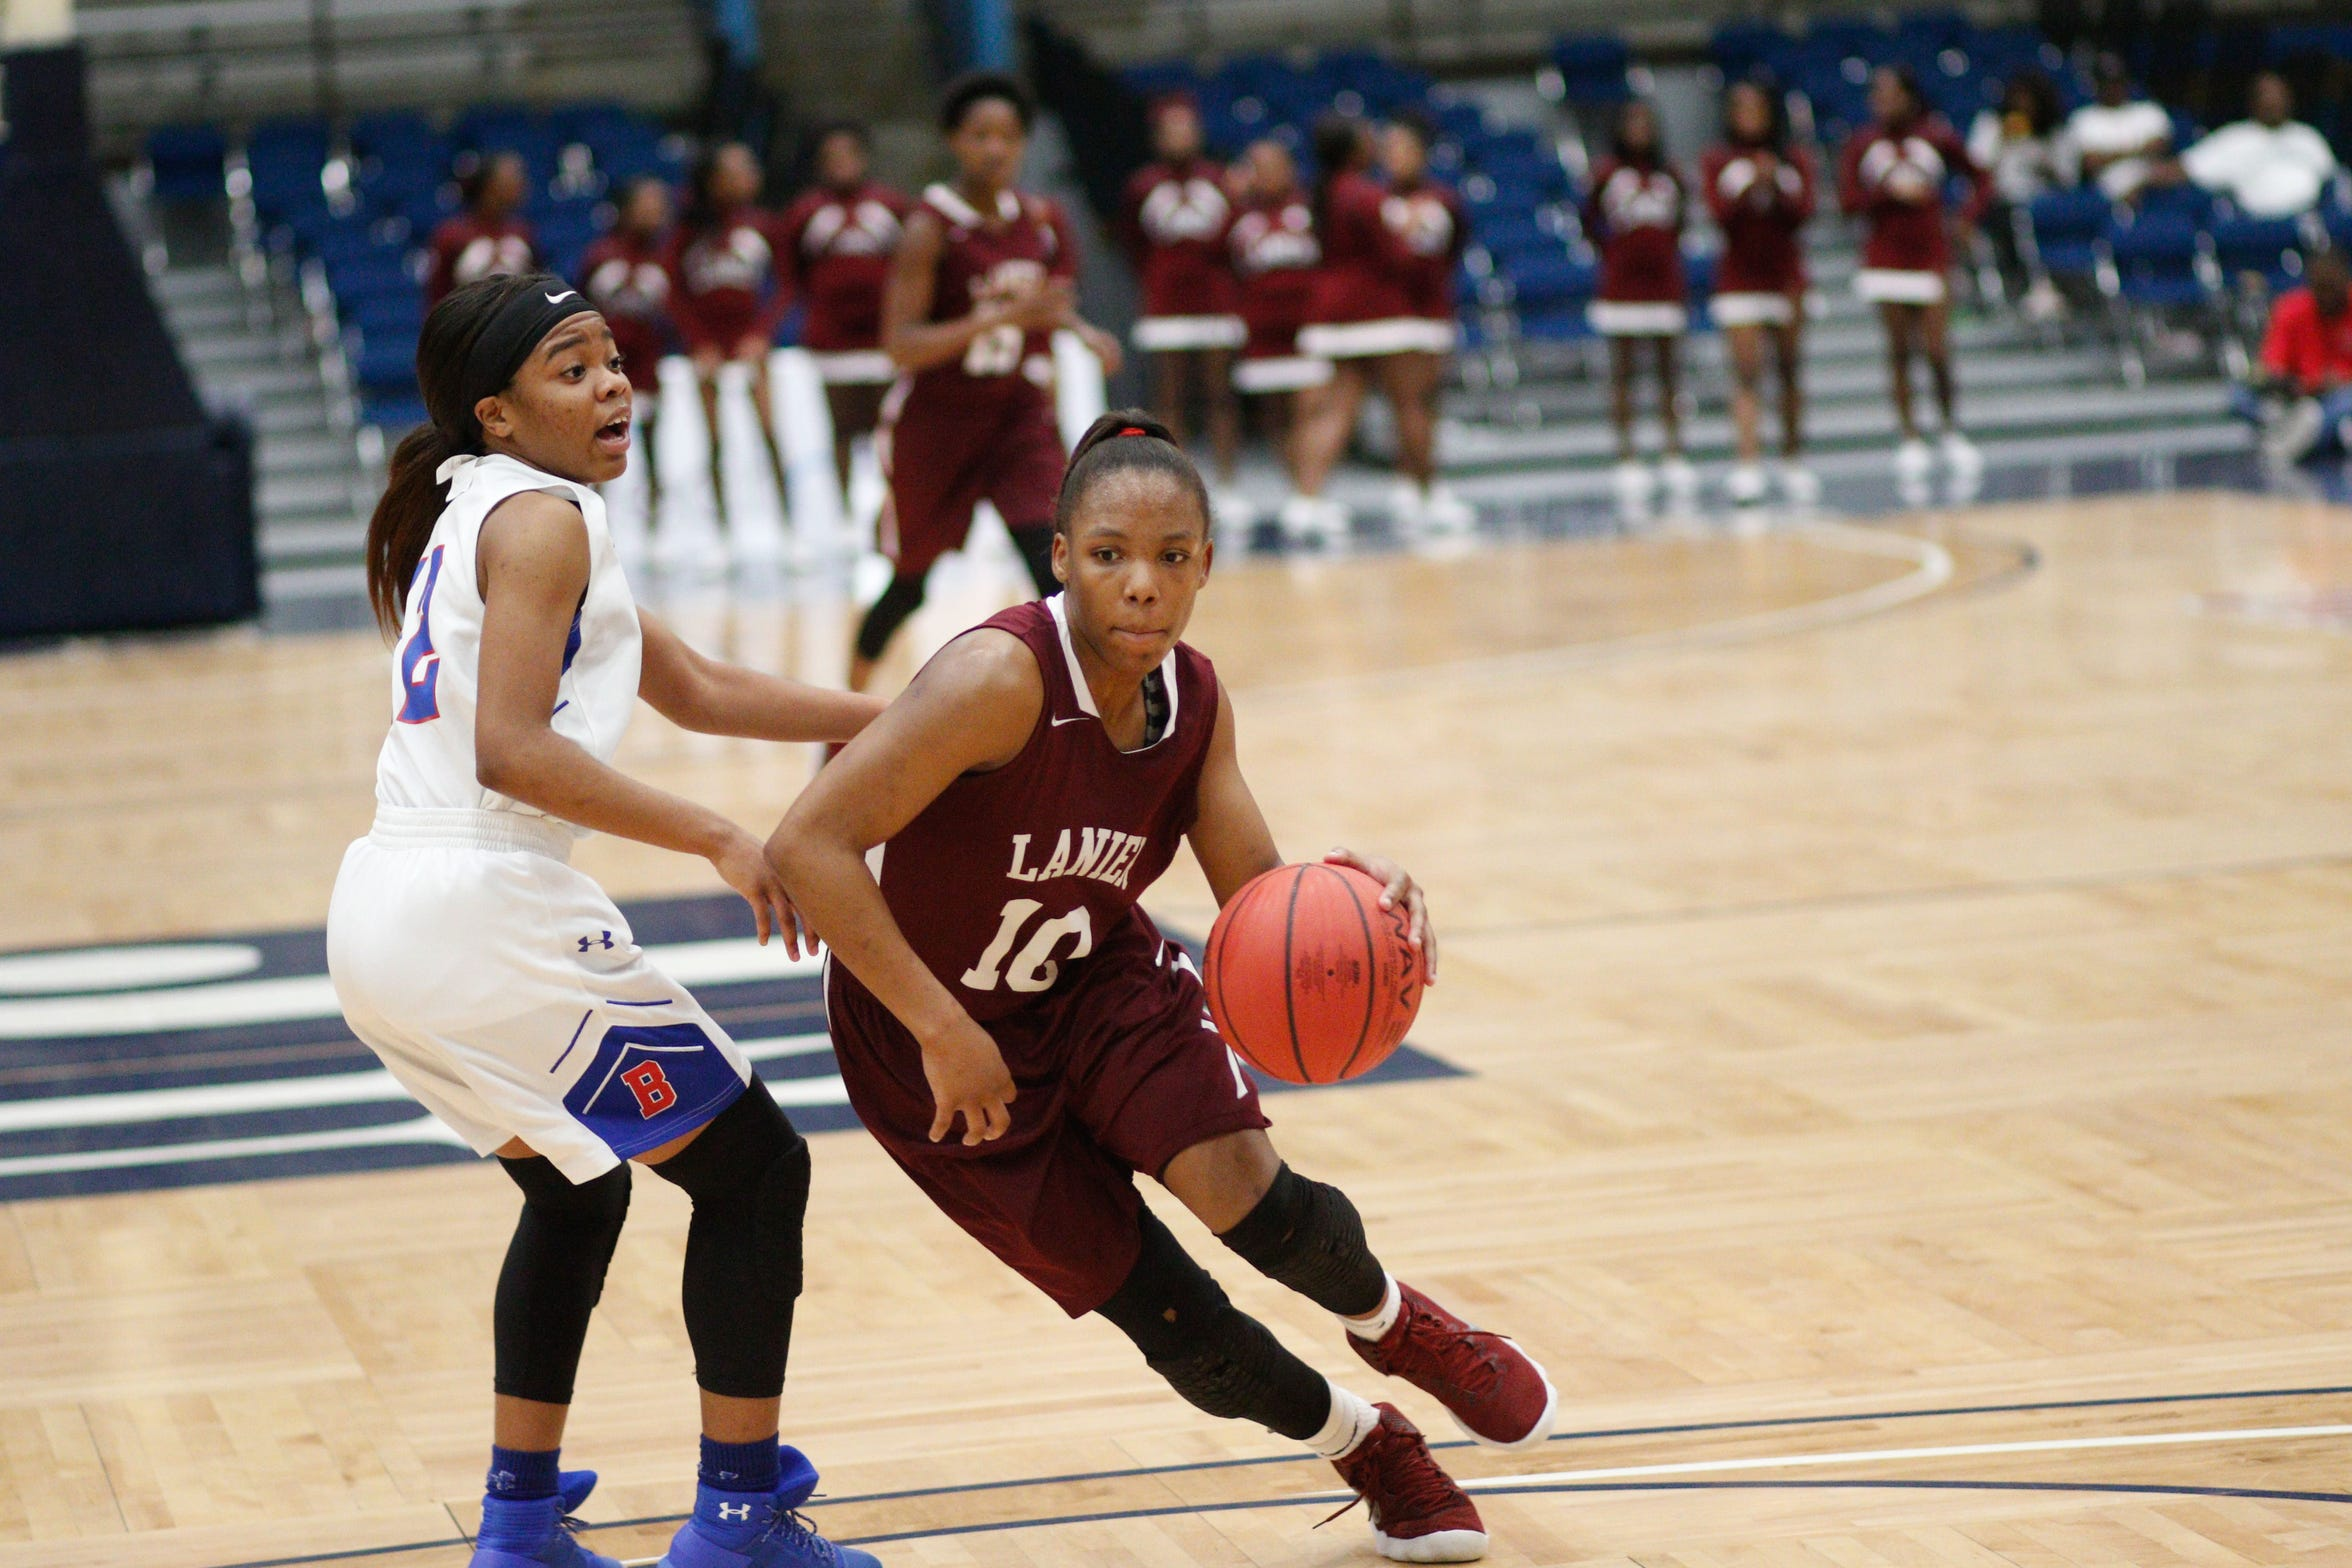 Keshunna Luckett (10), a member of the 2018-19 Dandy Dozen, dribbles past a defender during a game agains Byhalia on March 1, 2018, at Jackson State Univeristy in the Elite Eight round of the MHSAA 4A playoffs.